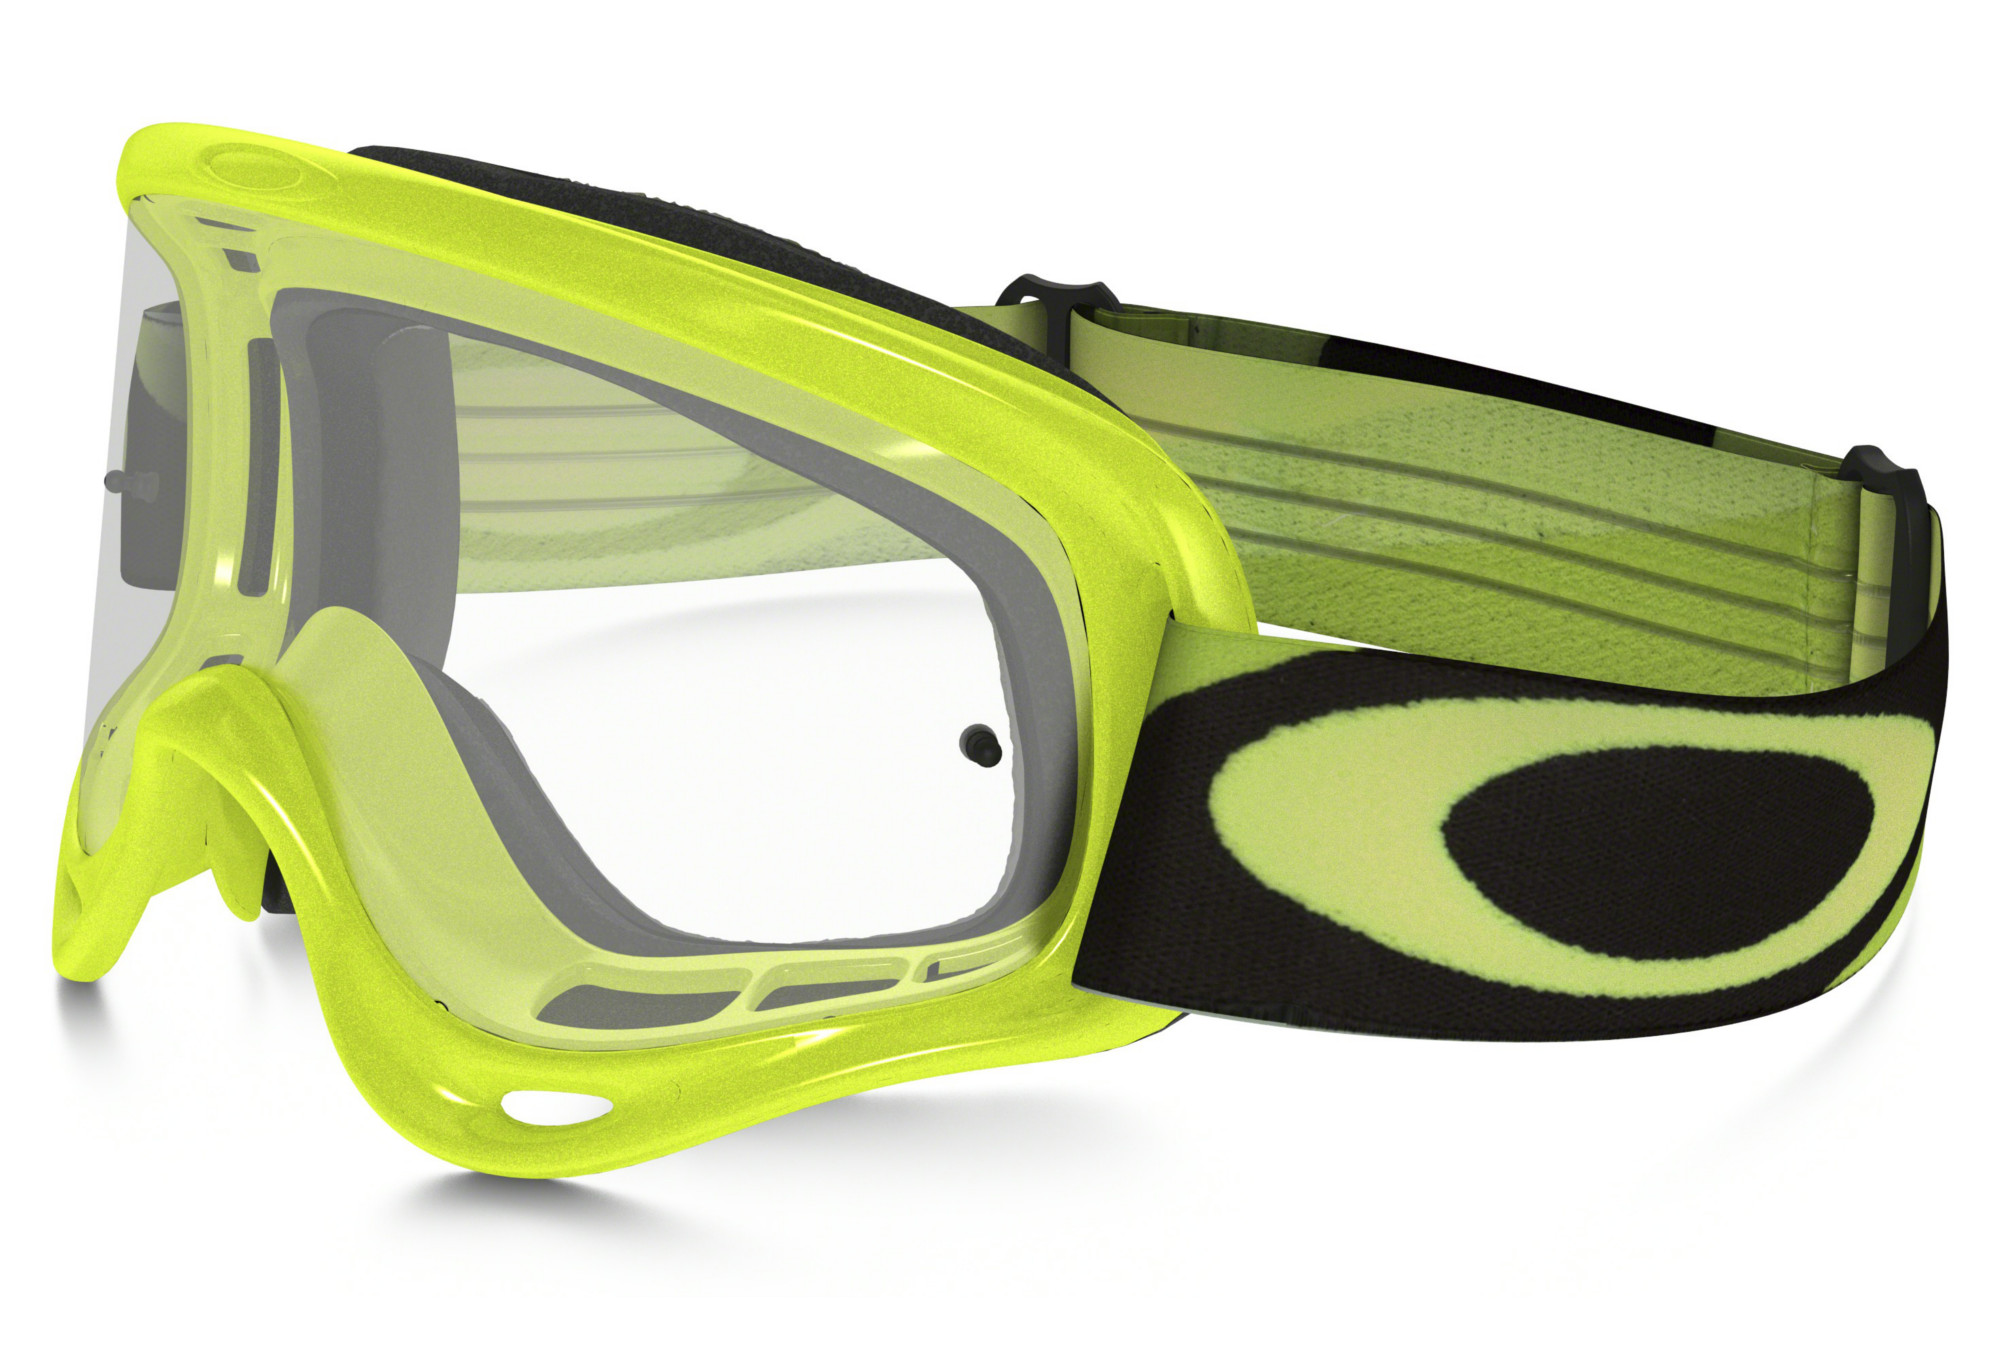 c65ac9f45a6 OAKLEY O FRAME MX HERITAGE RACER Goggle Youth Green Black ...